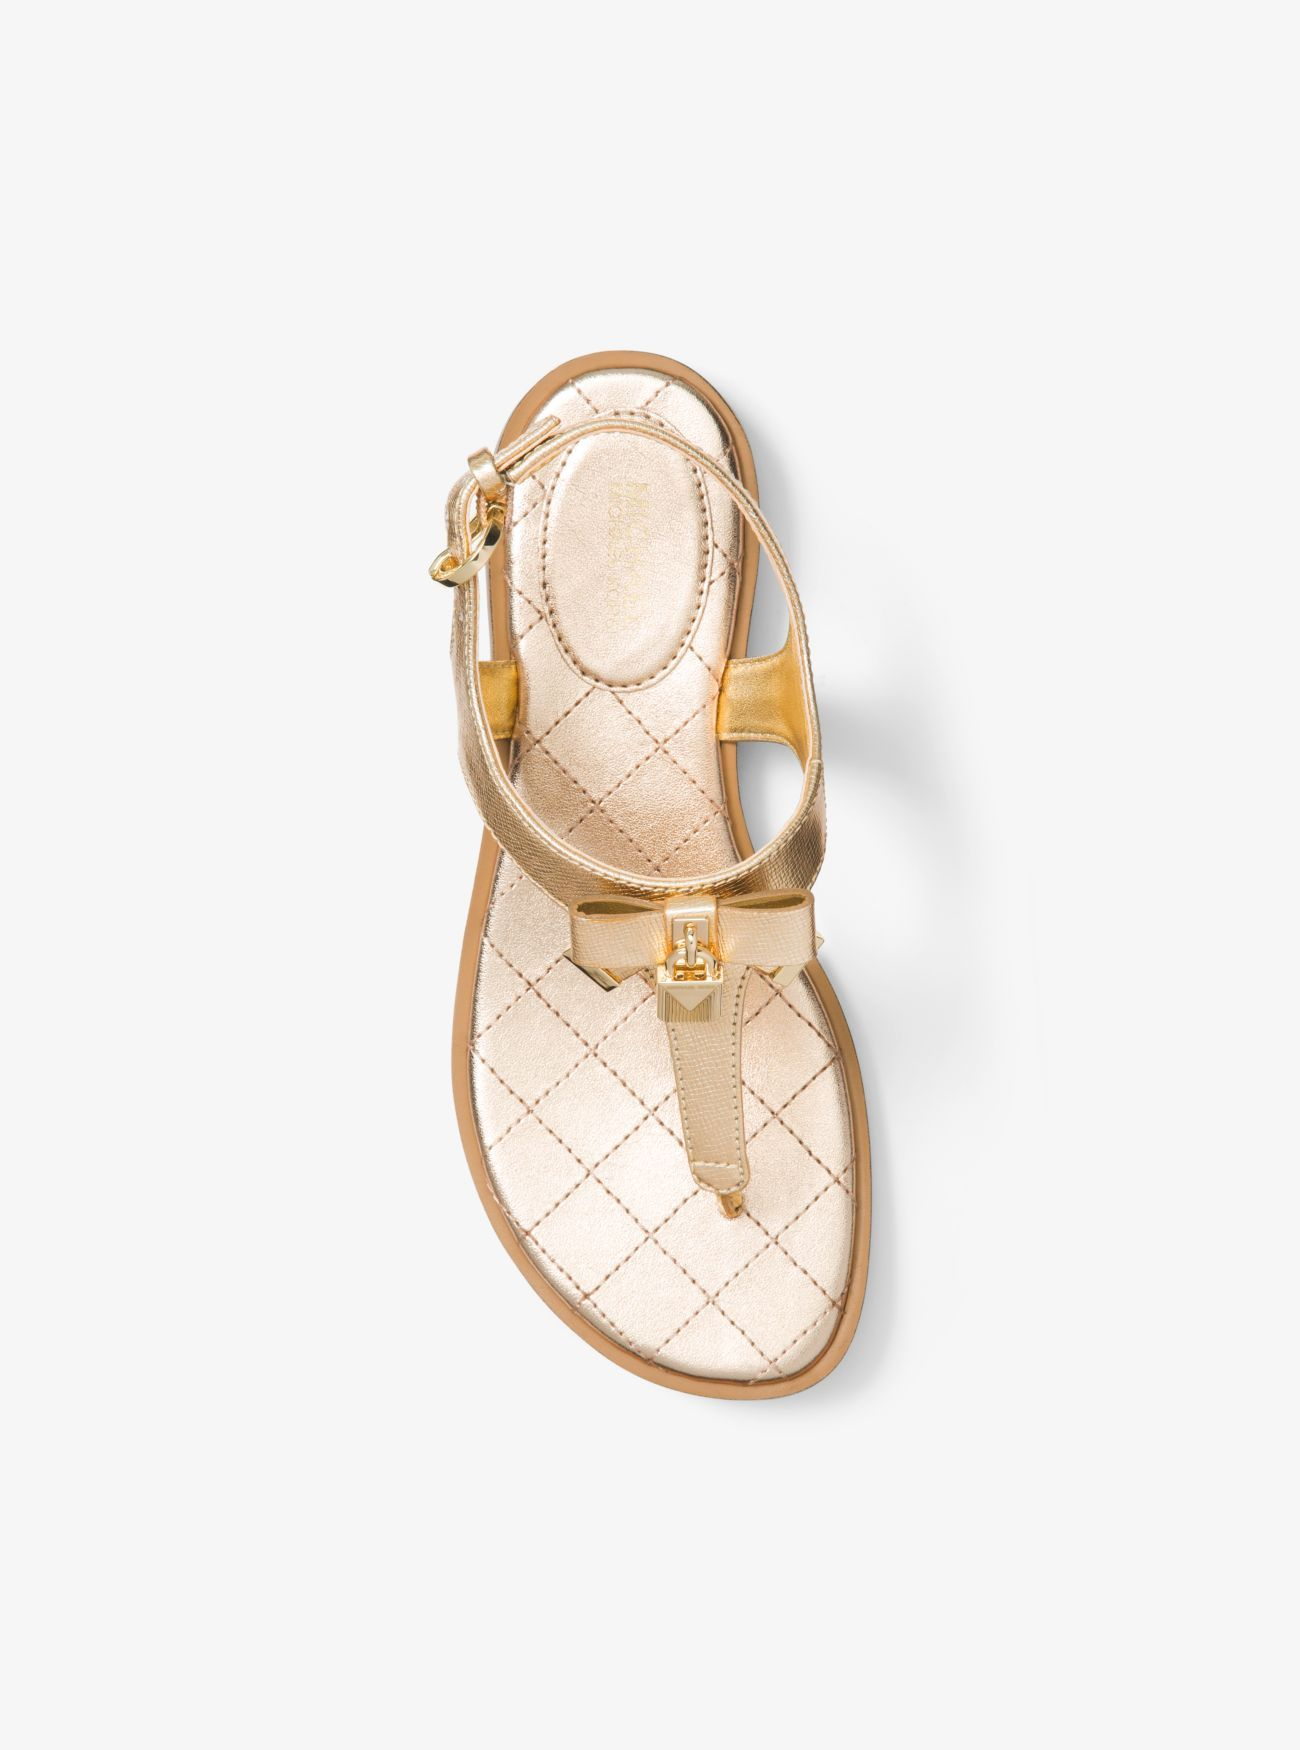 cb24e262f23 MICHAEL Michael Kors Alice Metallic Leather Sandal | Shoes | Leather ...